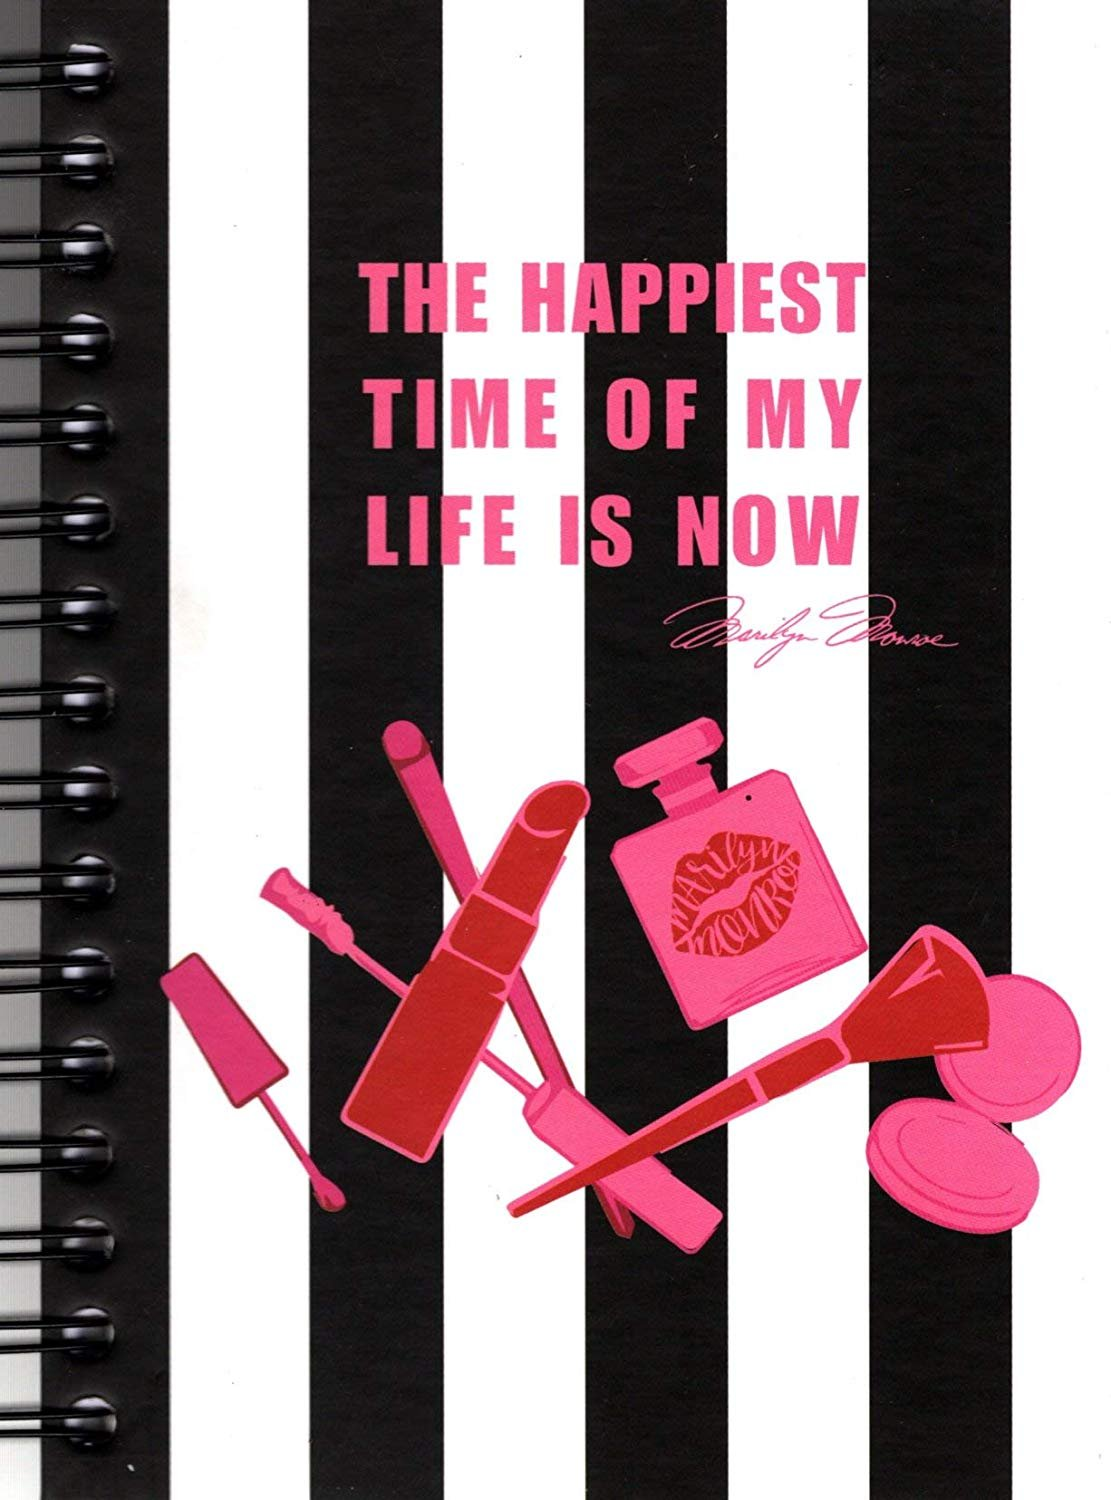 The Happiest Time of My Life is Now - Hardcover 240 Pages Journal/Notebook - v7